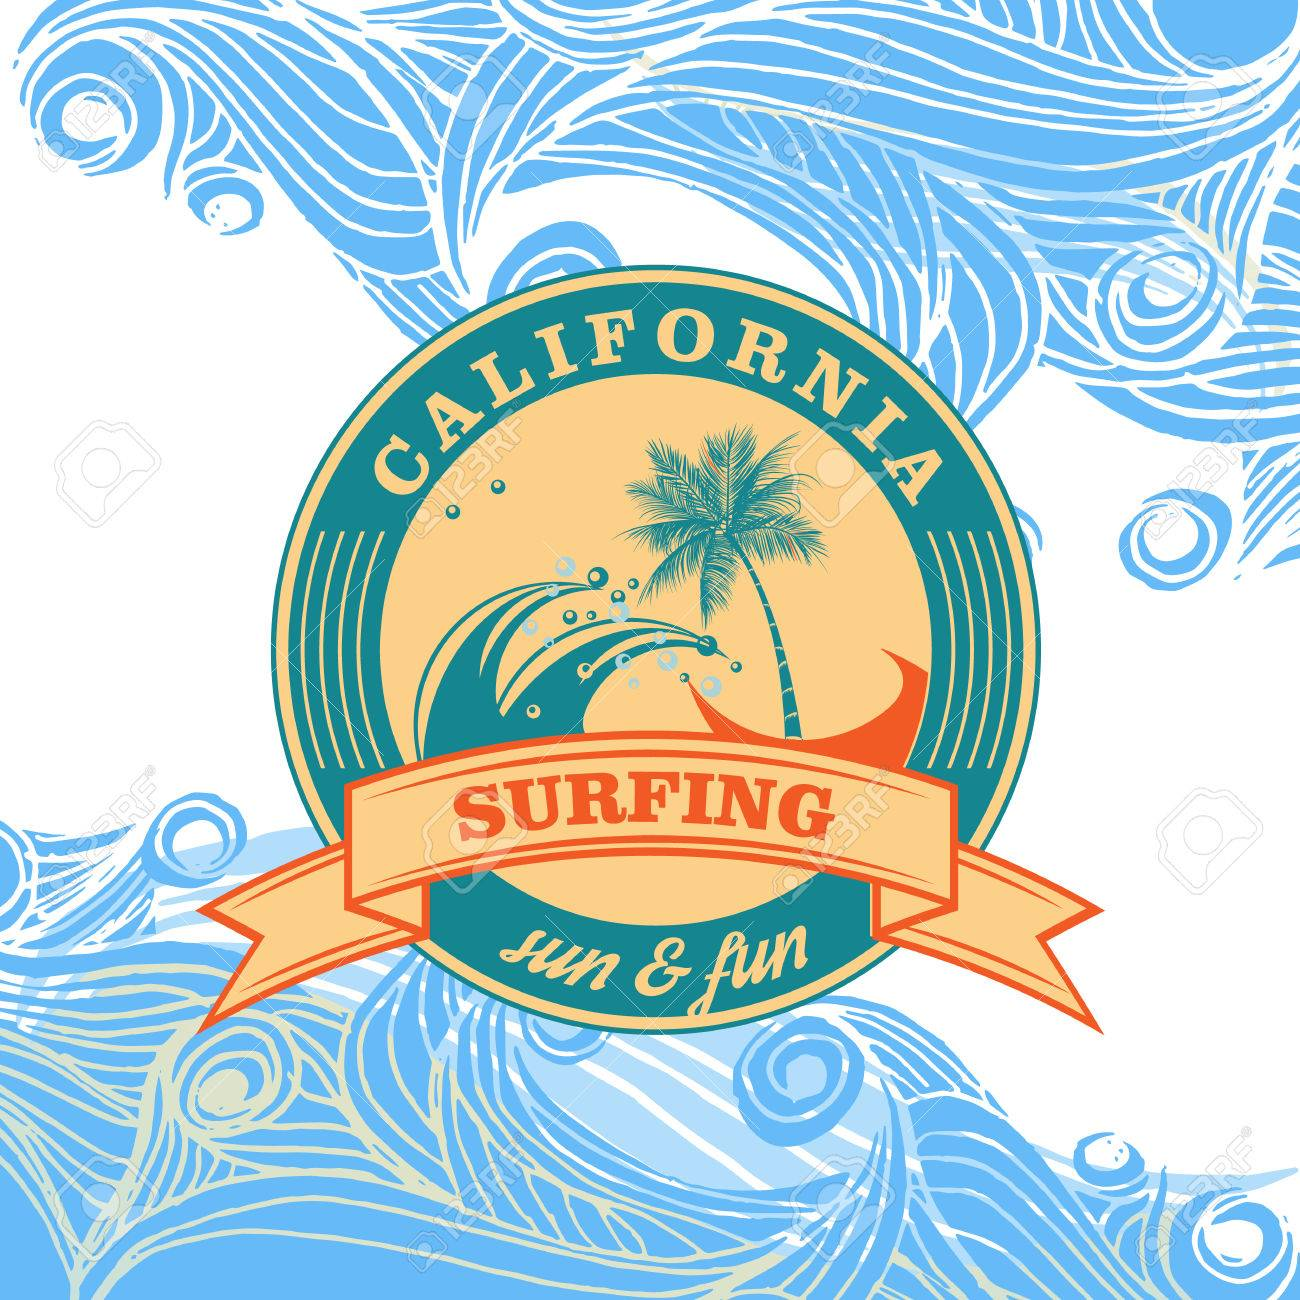 T shirt poster design - Summer Surfing Retro Vintage Logo Emblem T Shirt Poster Design Stock Vector